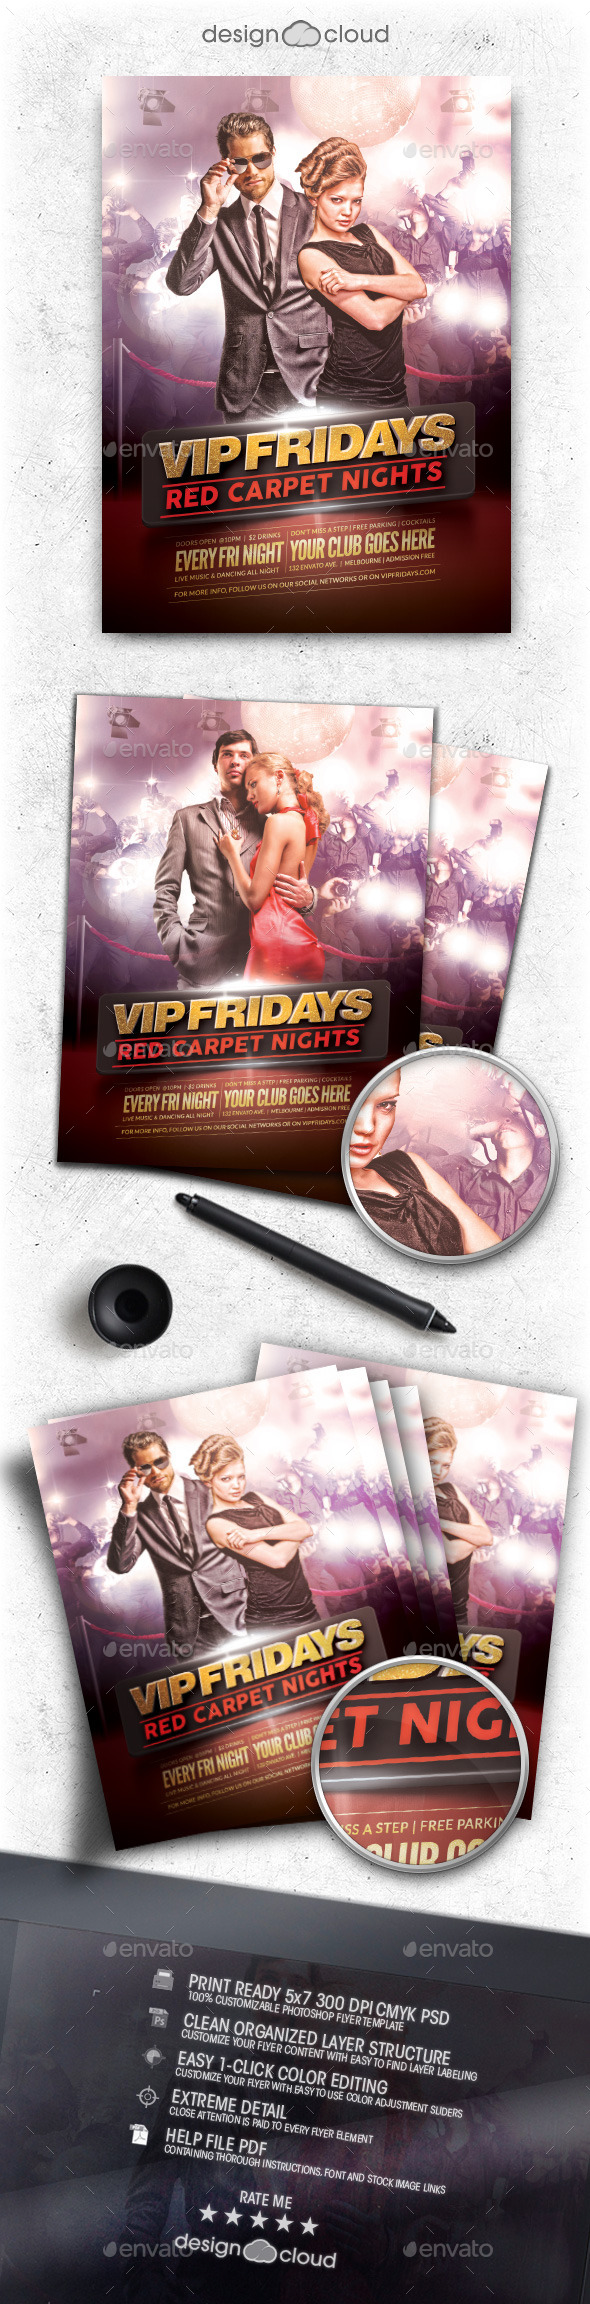 GraphicRiver VIP Fridays Red Carpet Nights Flyer Template 11110505